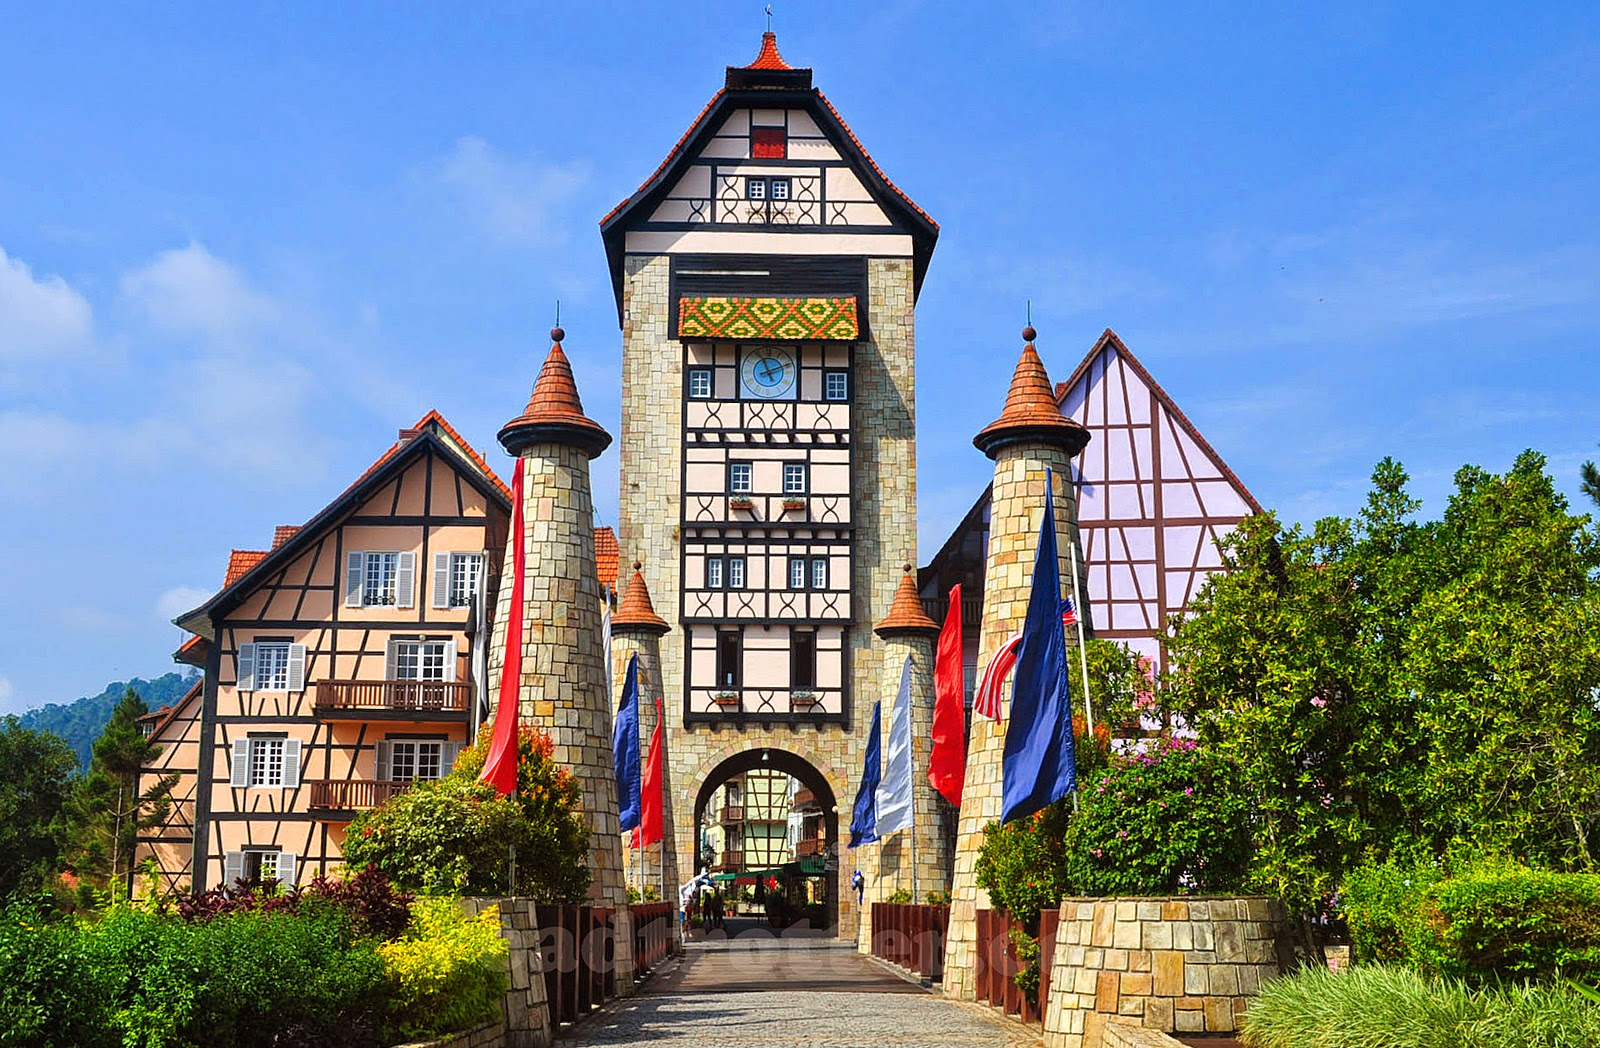 Bukit Tinggi's architectural design makes an amazing backdrop for photos (Image Credit: http://blog.malaysia-asia.my)